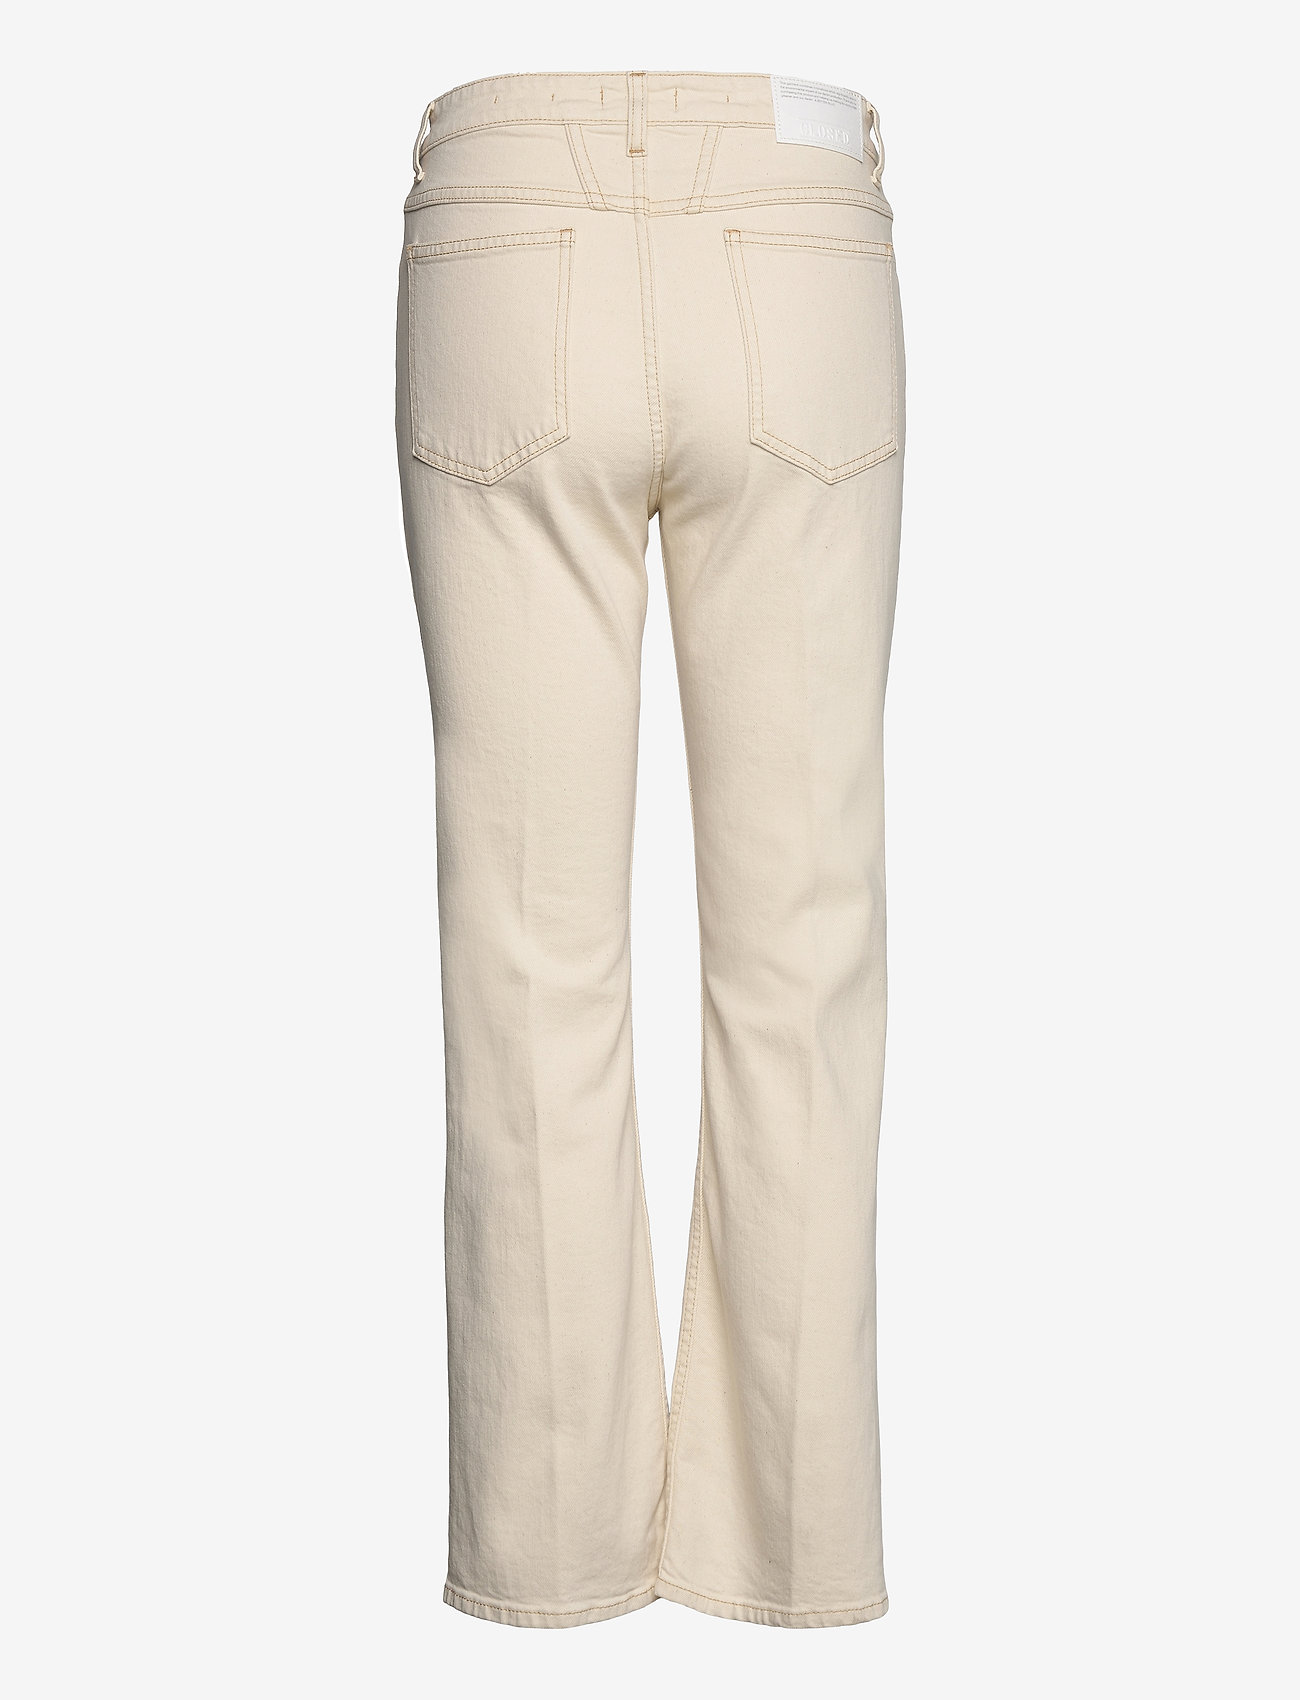 Closed - womens pant - schlaghosen - creme - 1